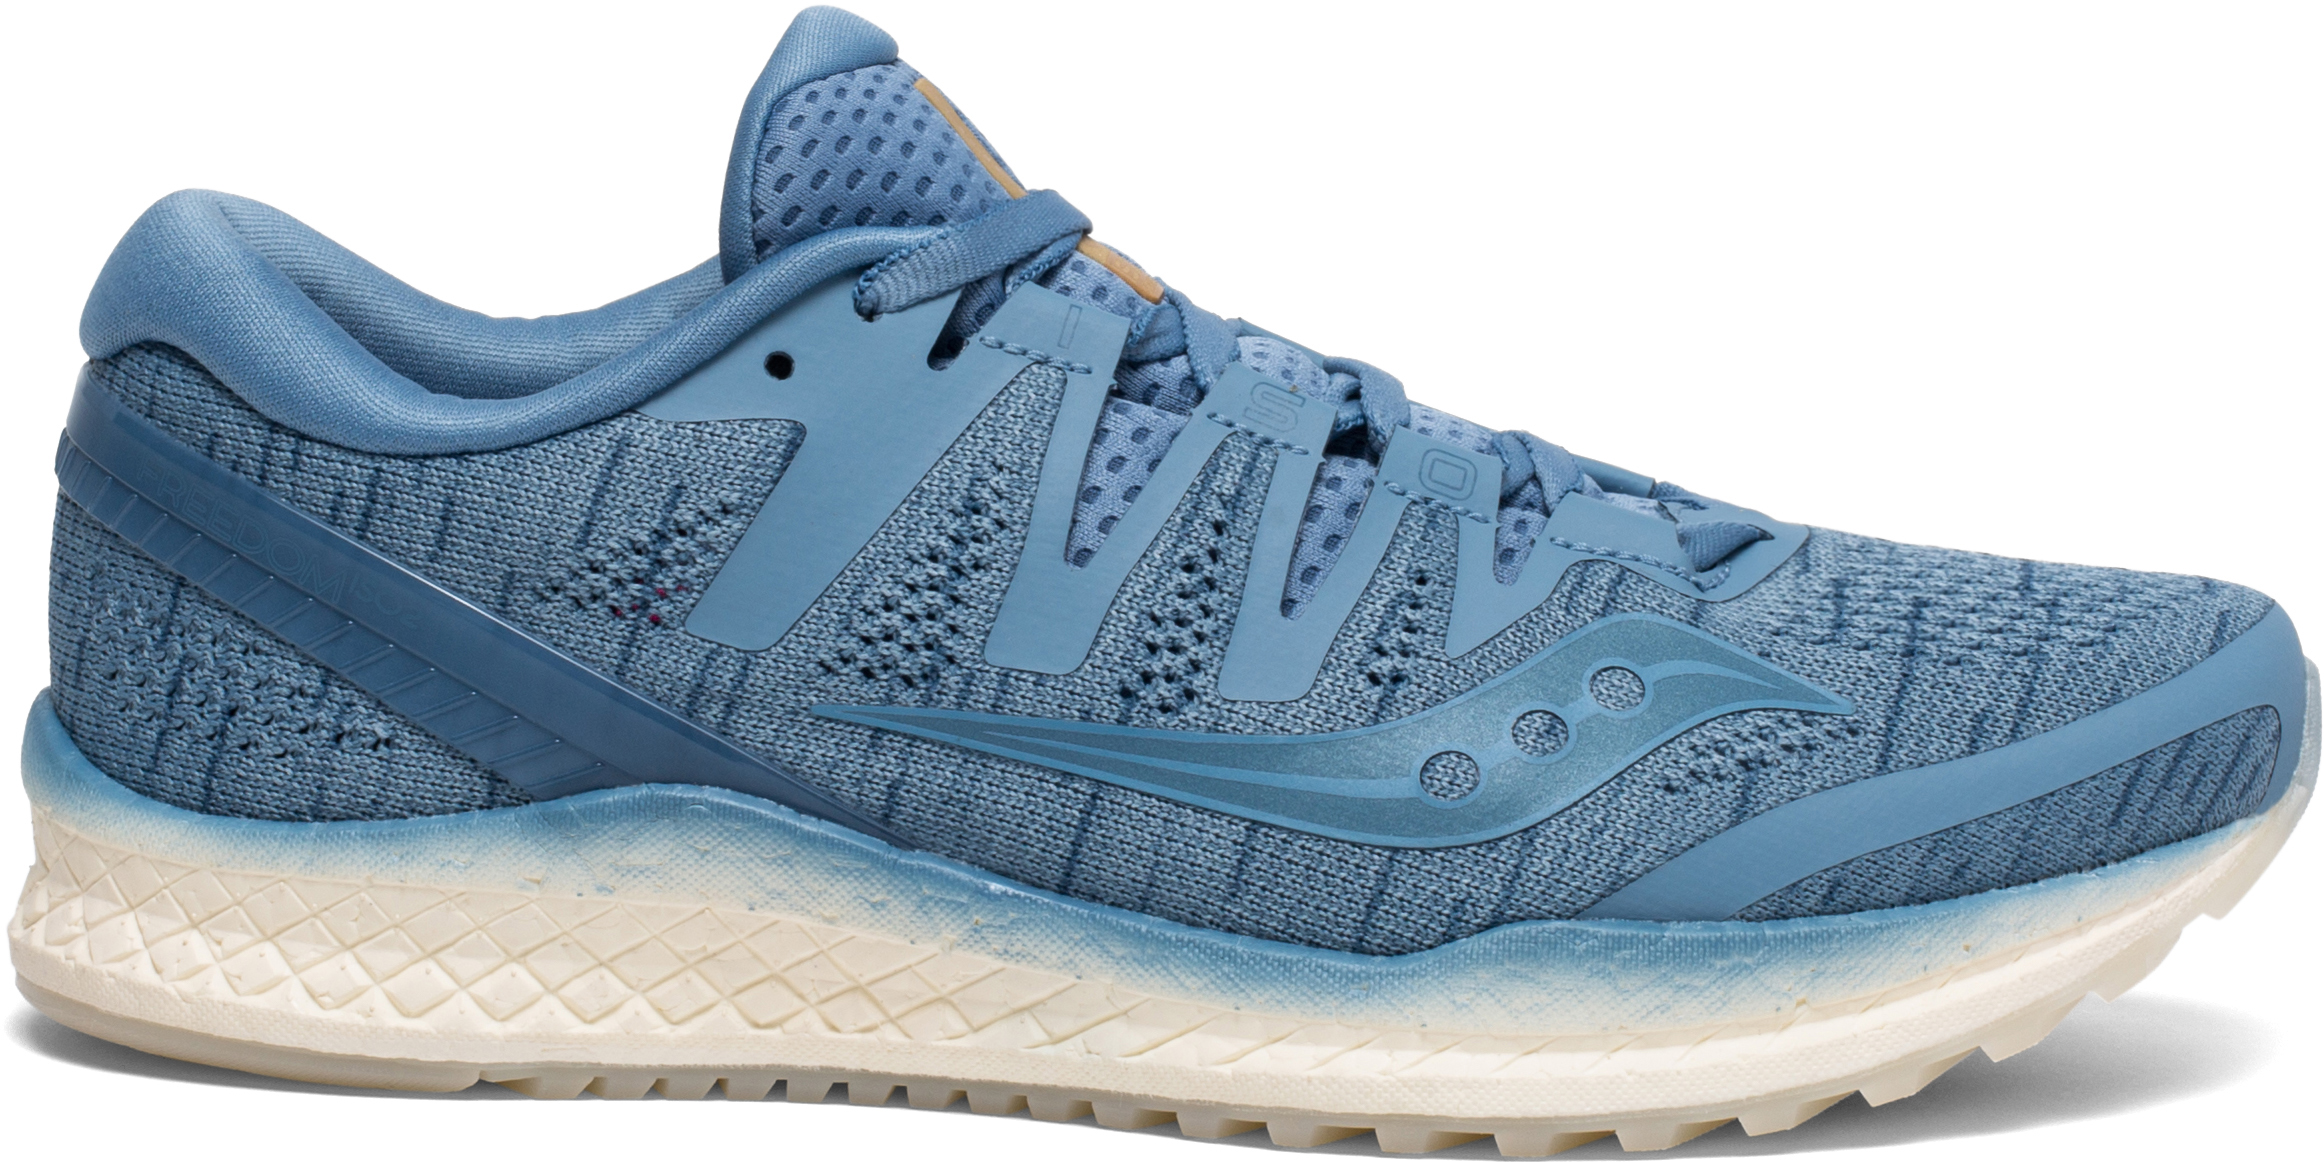 2ceda65d2e4 Saucony Freedom ISO 2 Road Running Shoes - Women s